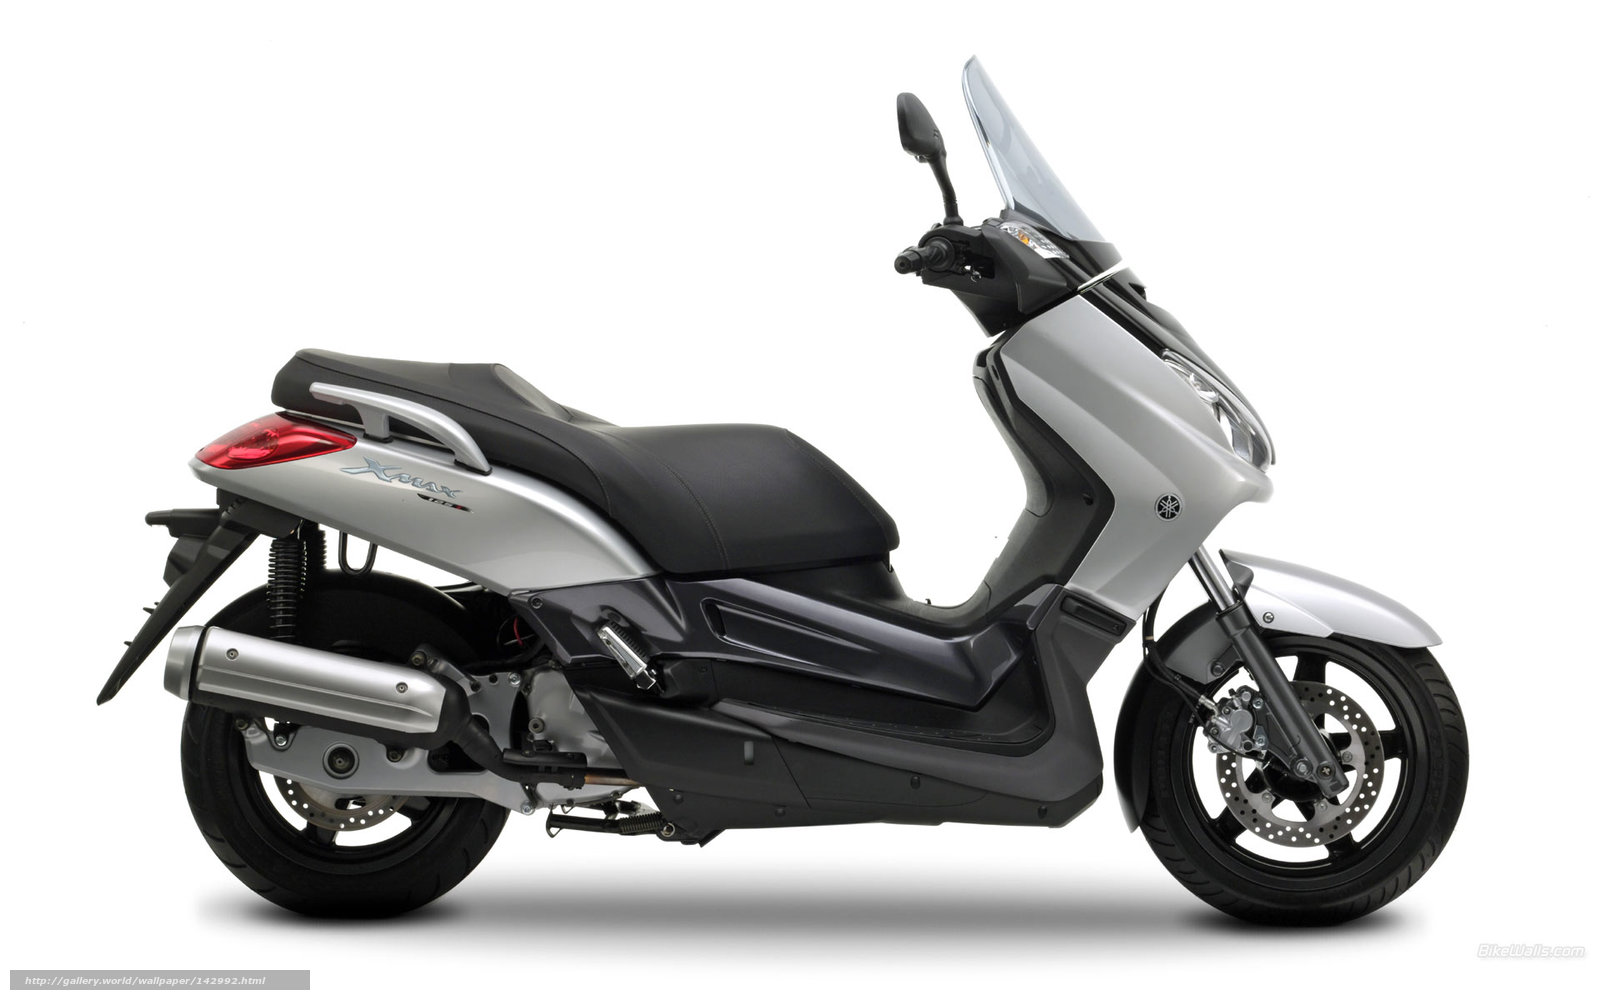 download wallpaper yamaha scooter x max 125 x max 125 2008 free desktop wallpaper in the. Black Bedroom Furniture Sets. Home Design Ideas